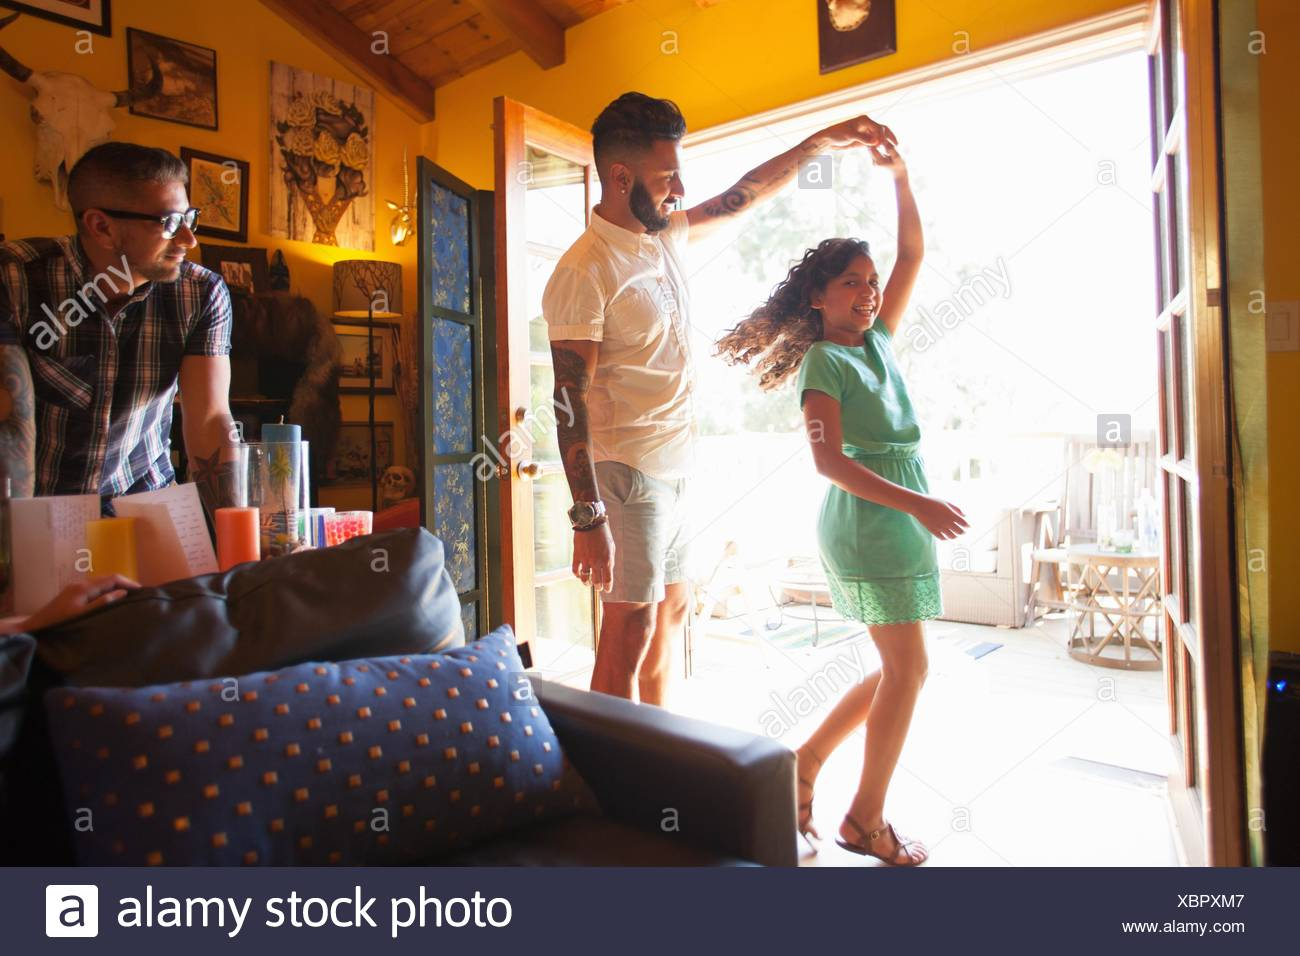 Girl dancing and twirling with father in living room - Stock Image